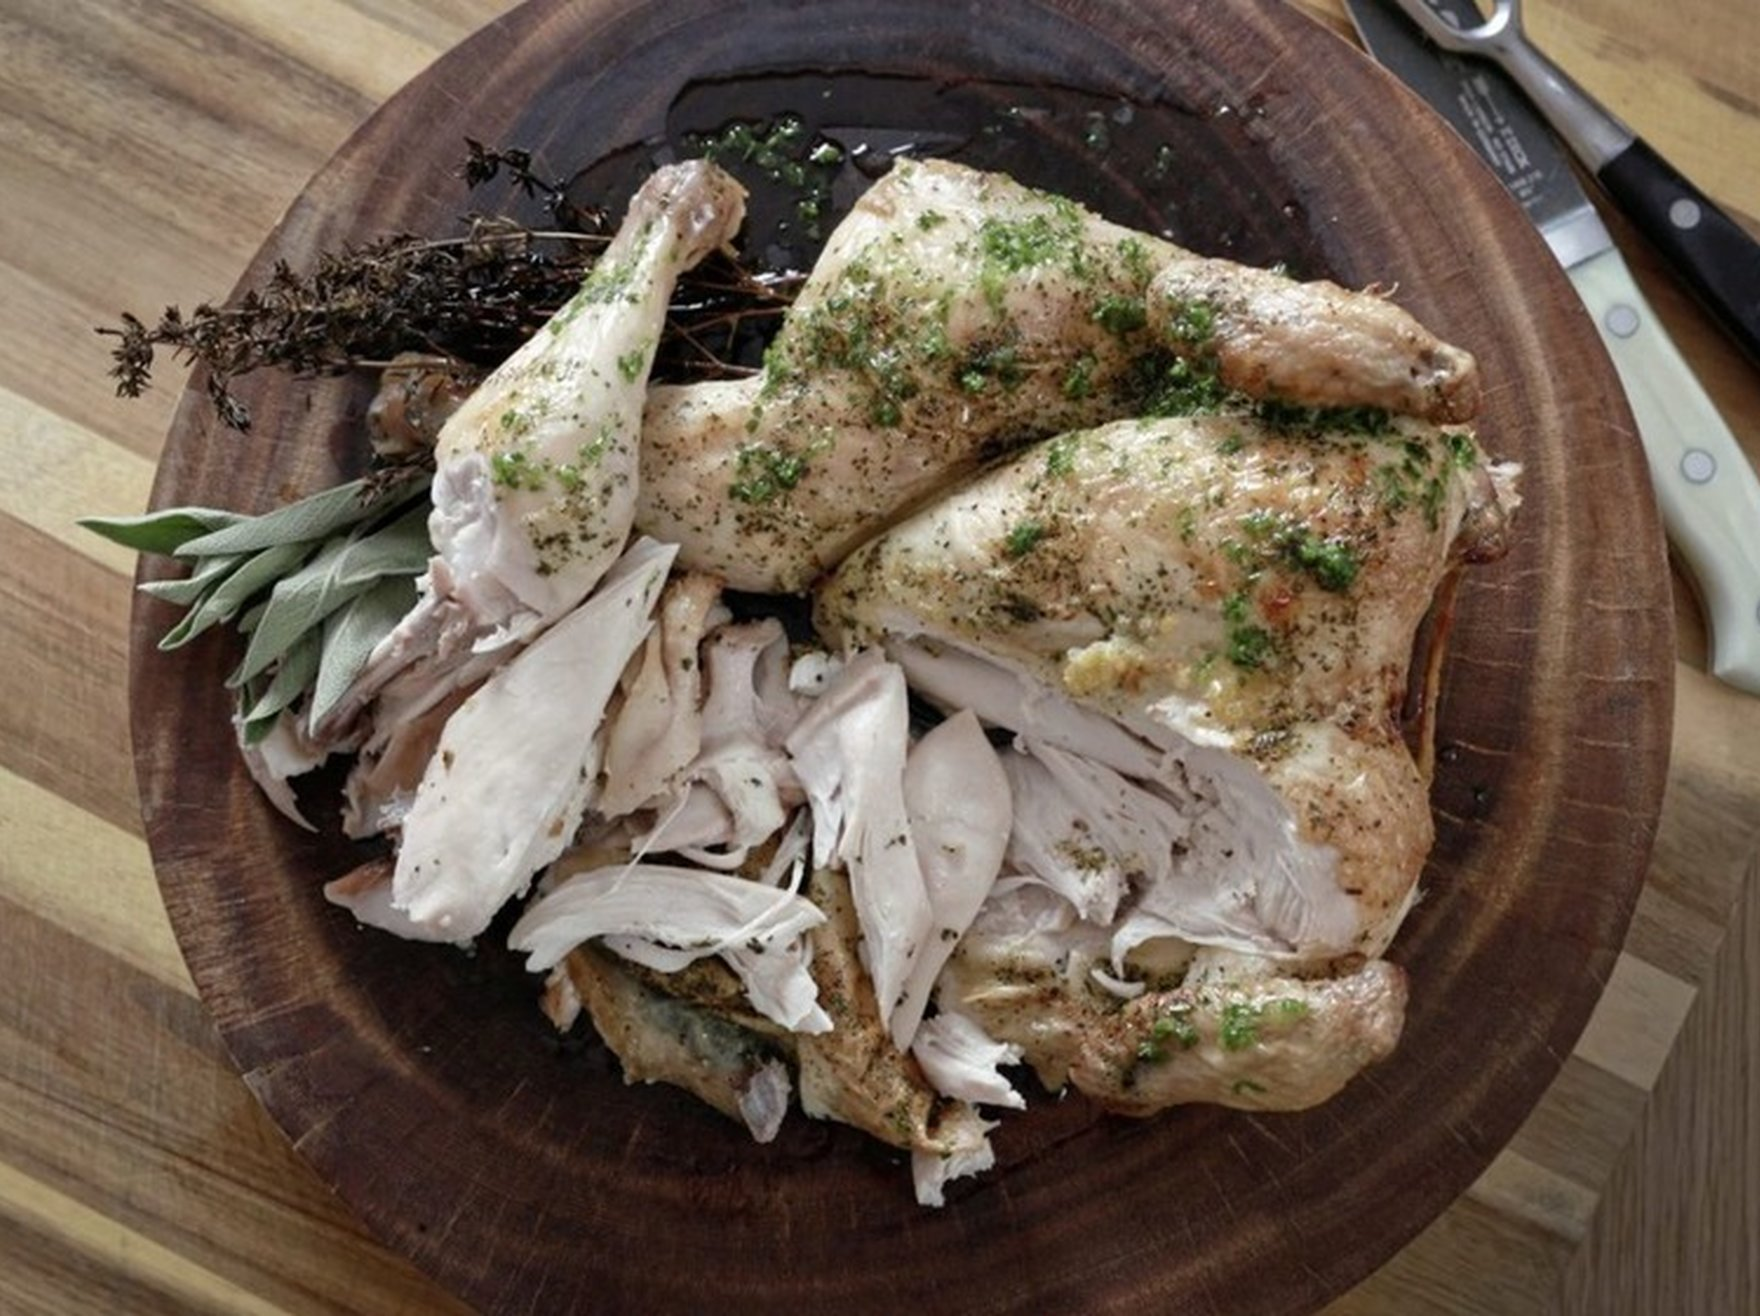 Roast chicken with herbs, crab fried rice | James St